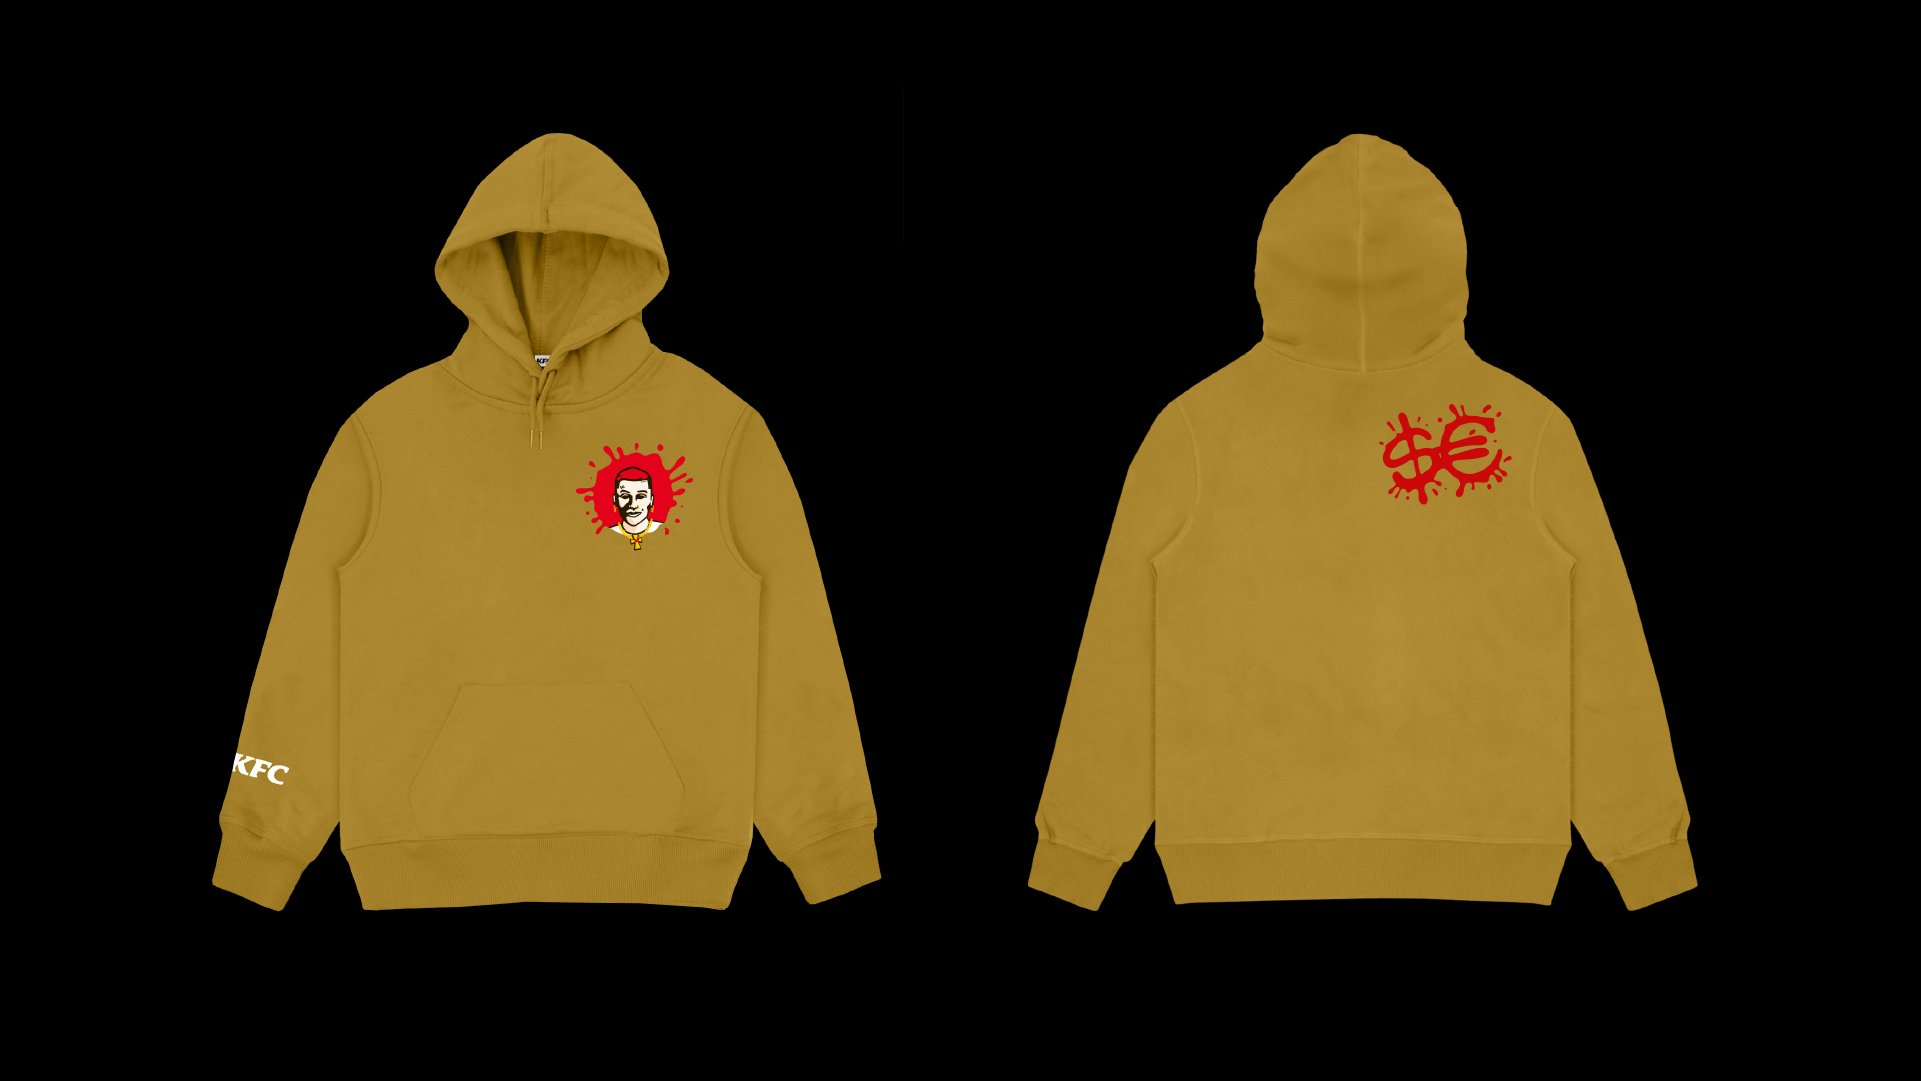 SFERA KFC MERCH 2020 hoodies 02